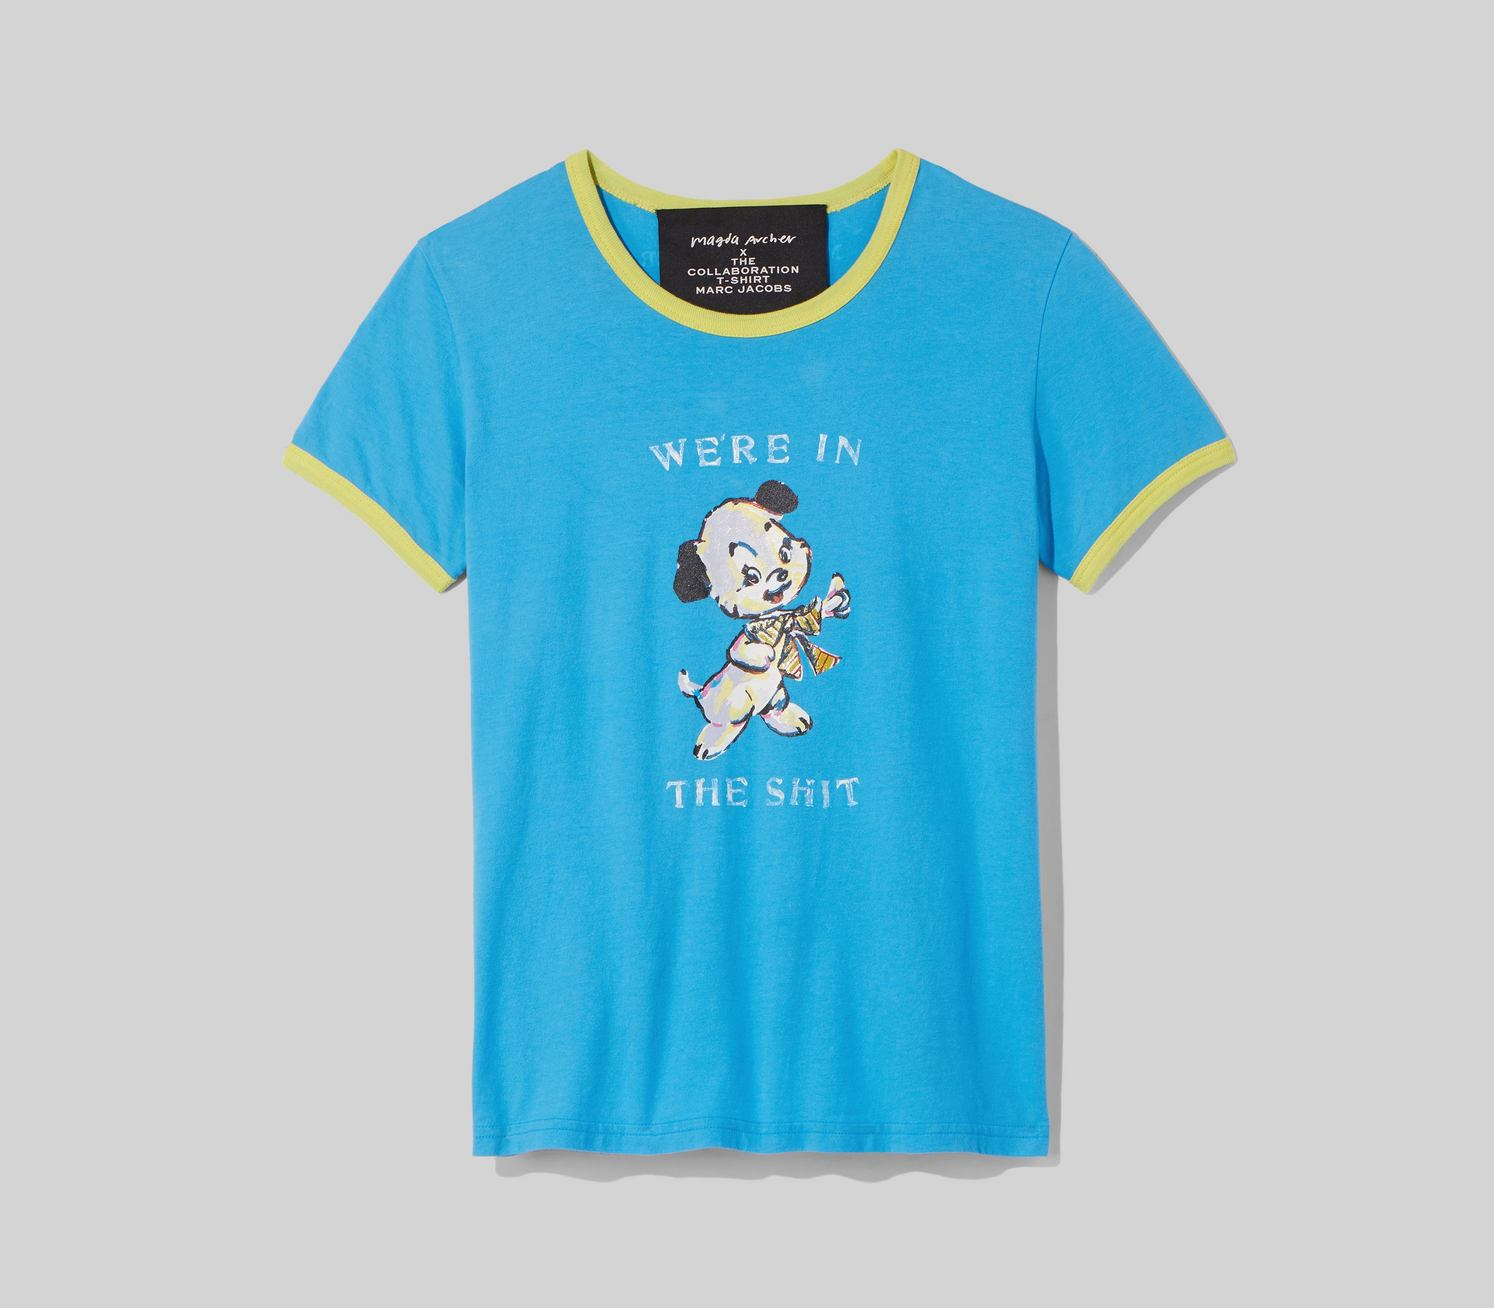 marc-jacobs-x-magda-archer-we-re-in-the-shit-t-shirt